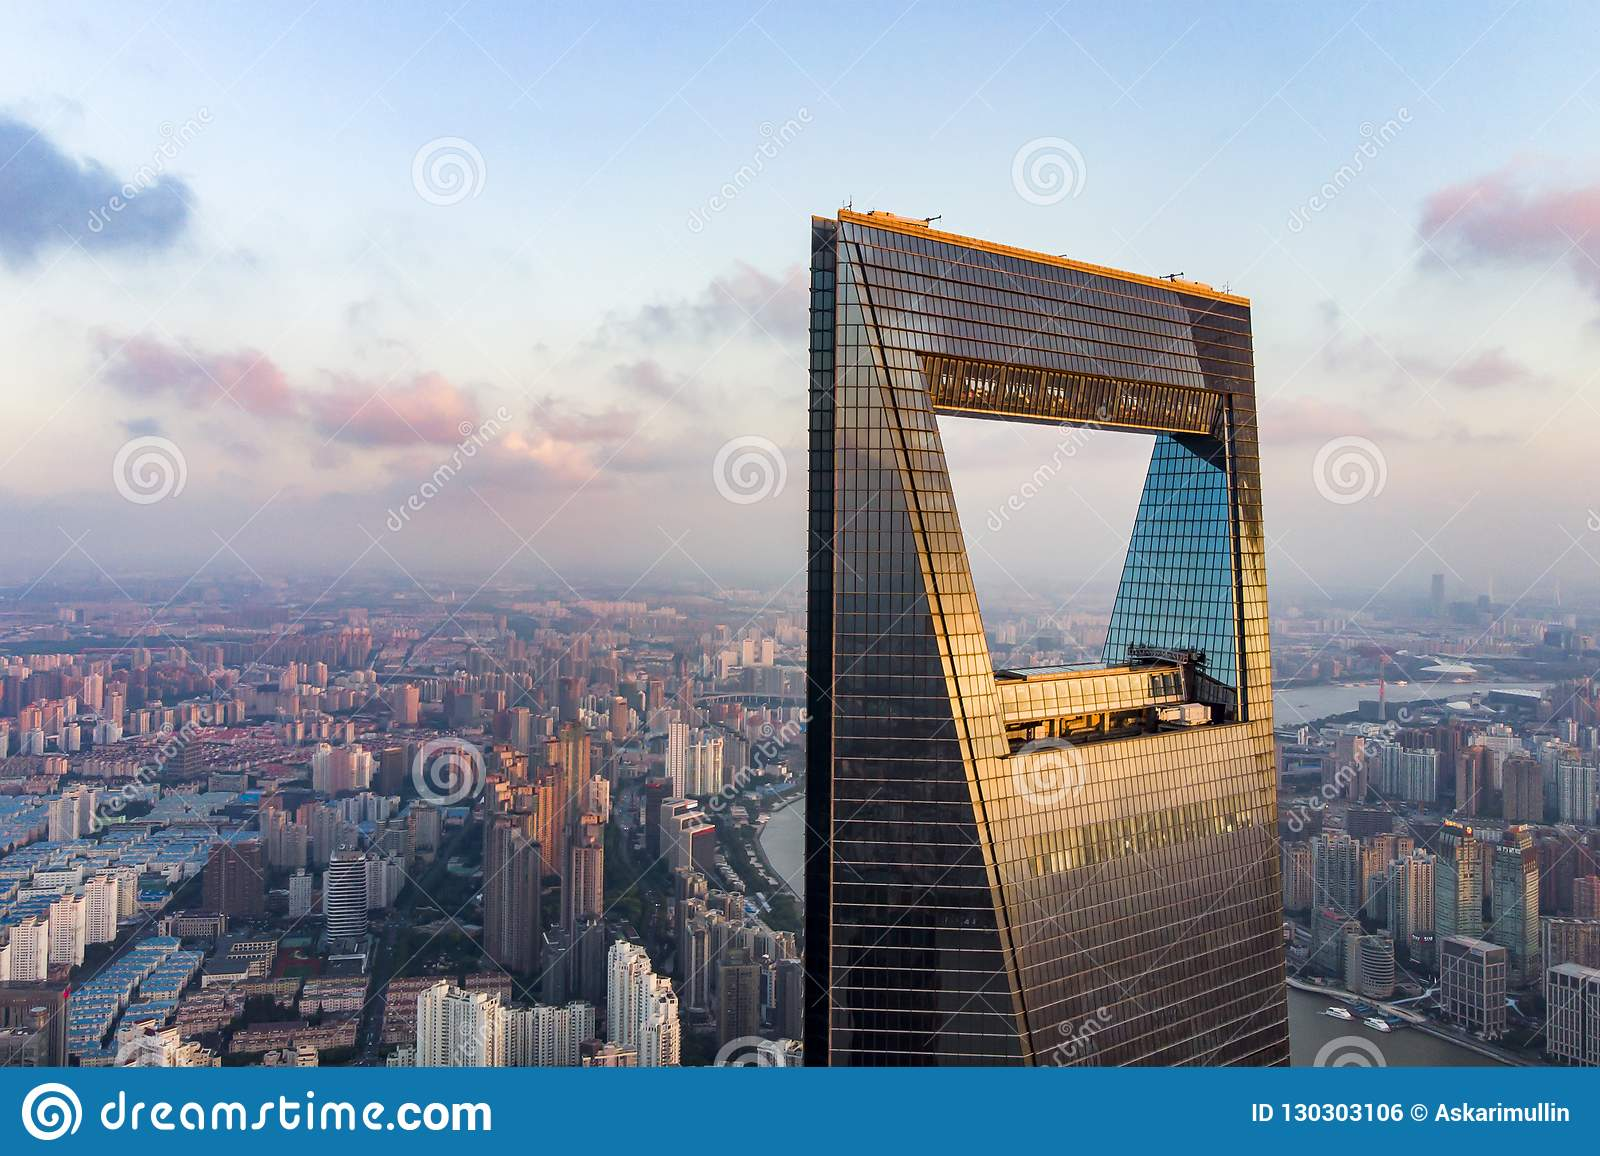 View Through Window Of Shanghai Tower To Low Rise Residential District in Pudong.